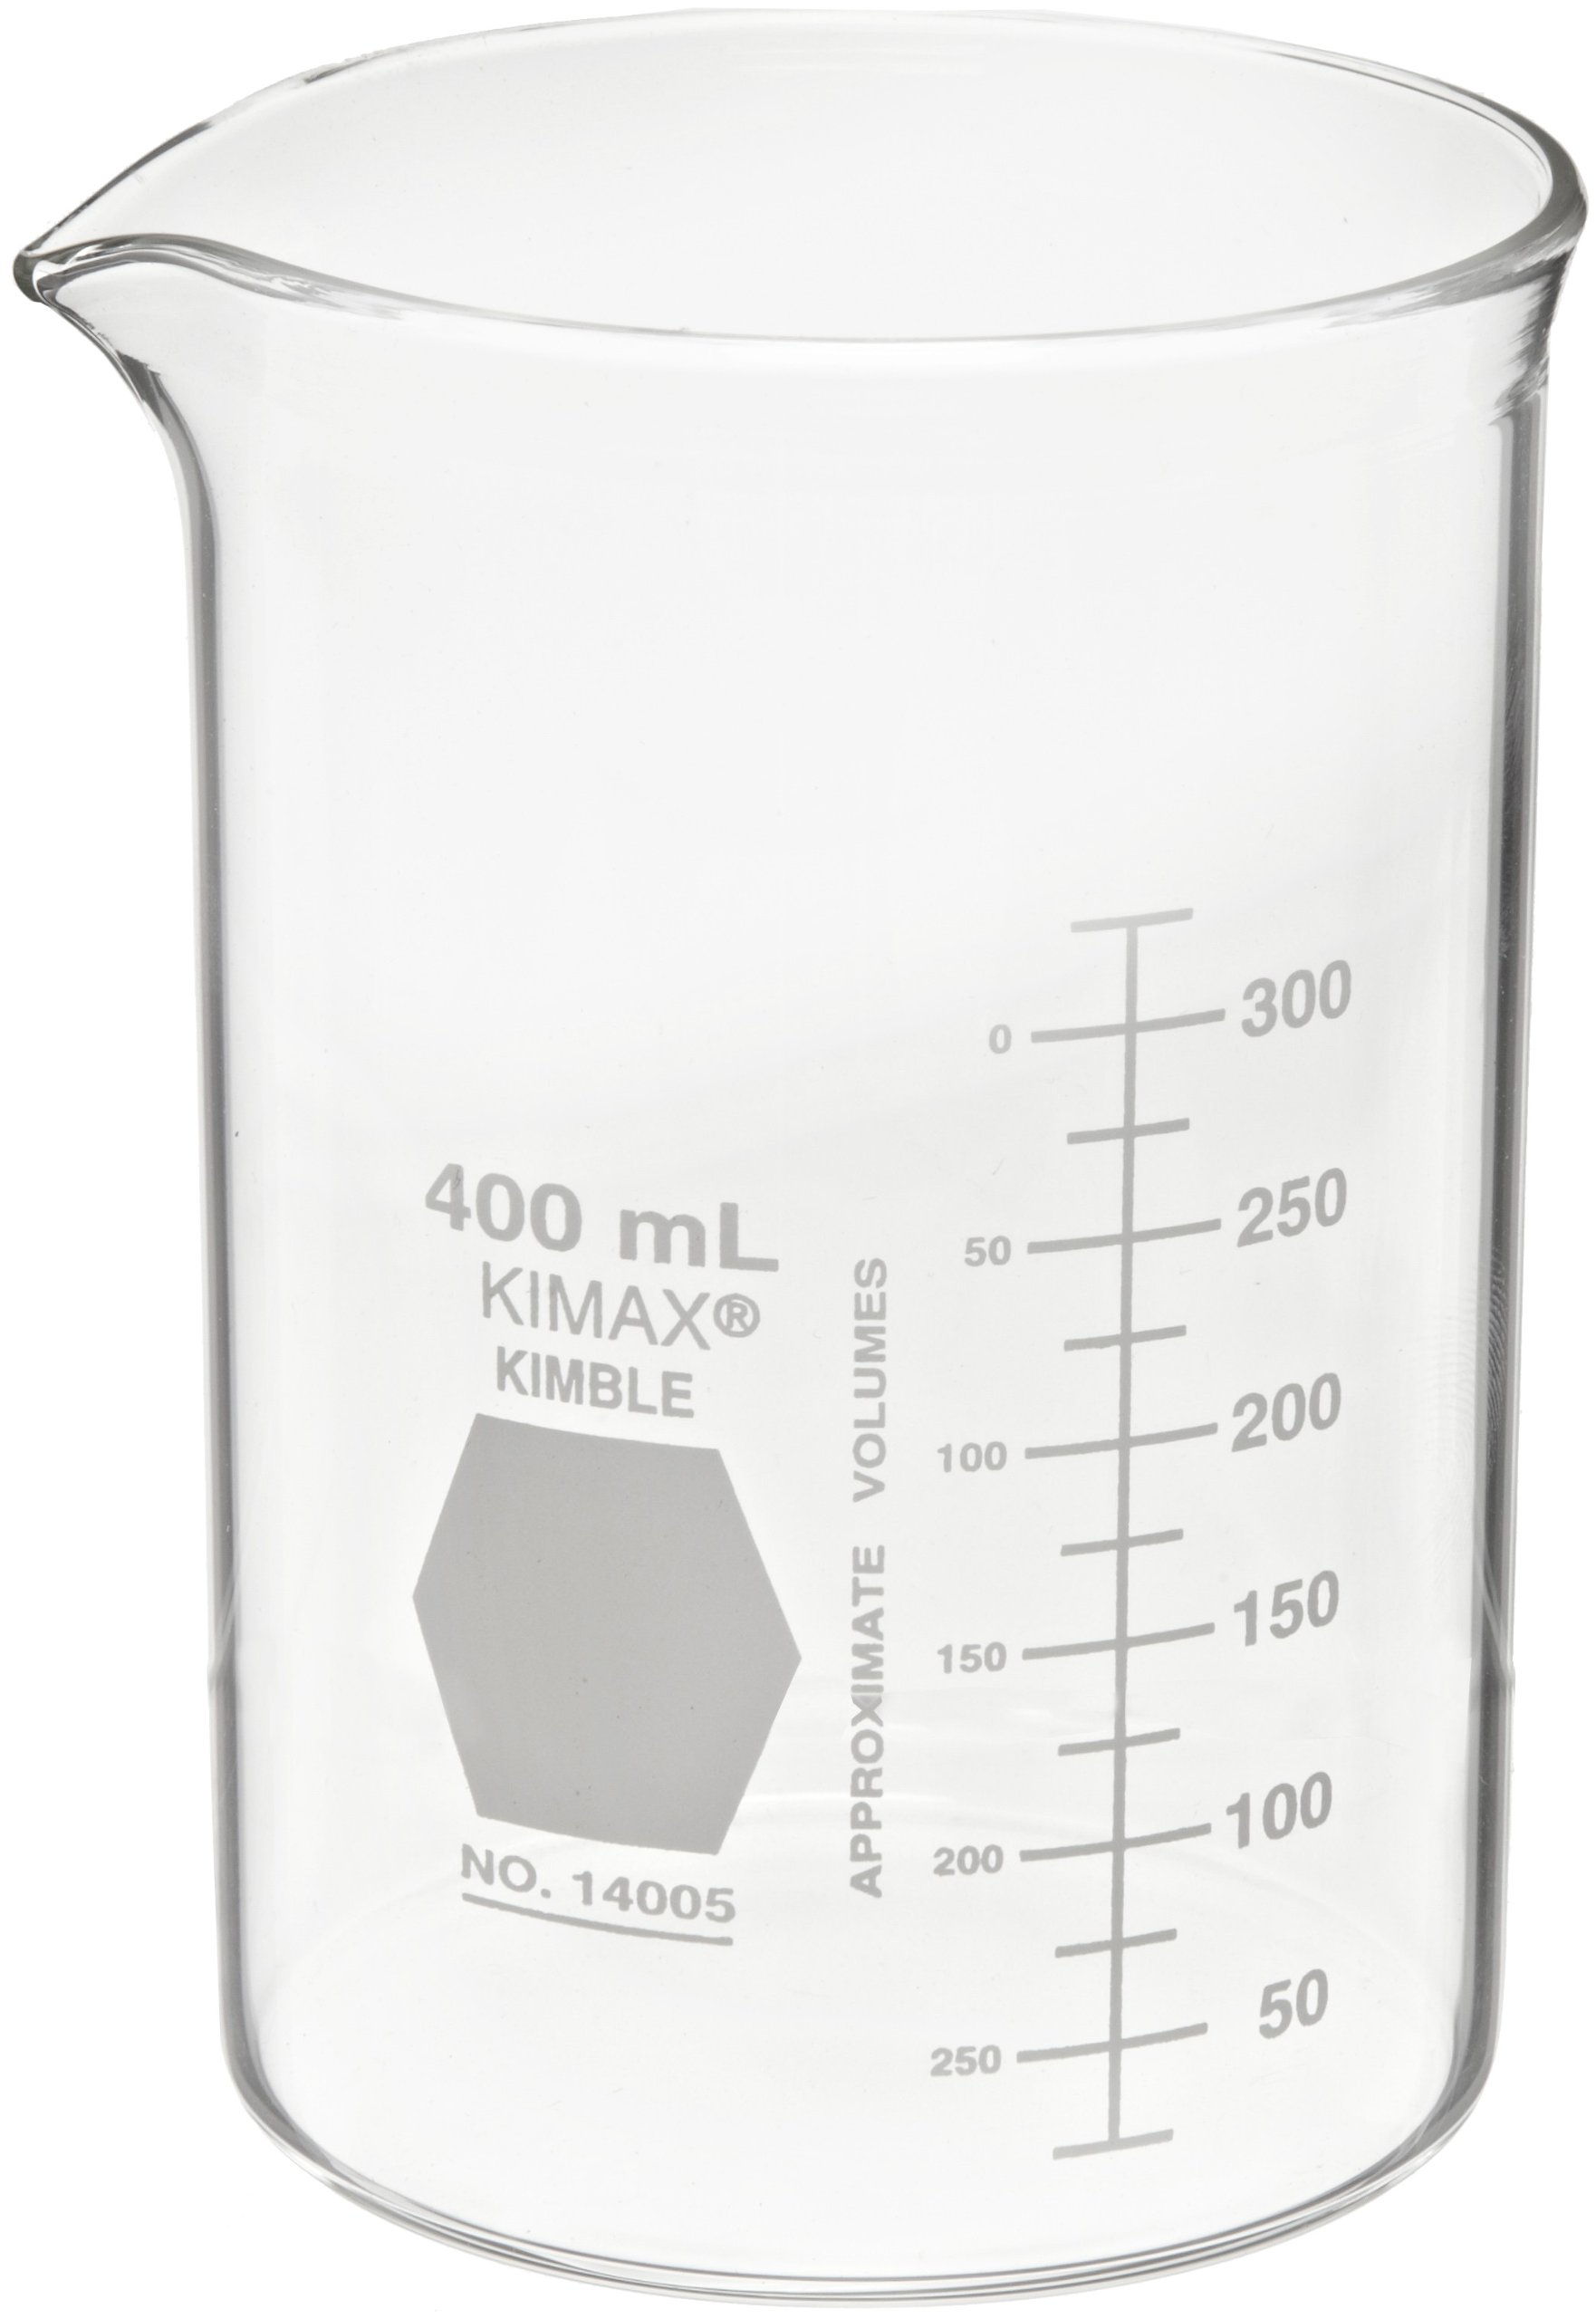 Kimax 14005-400 Glass Heavy-Duty Low Form Beaker with Double Capacity Scale, 25-325mL Graduation Interval, 400mL Capacity, 25mL Graduation, White (Pack of 12)